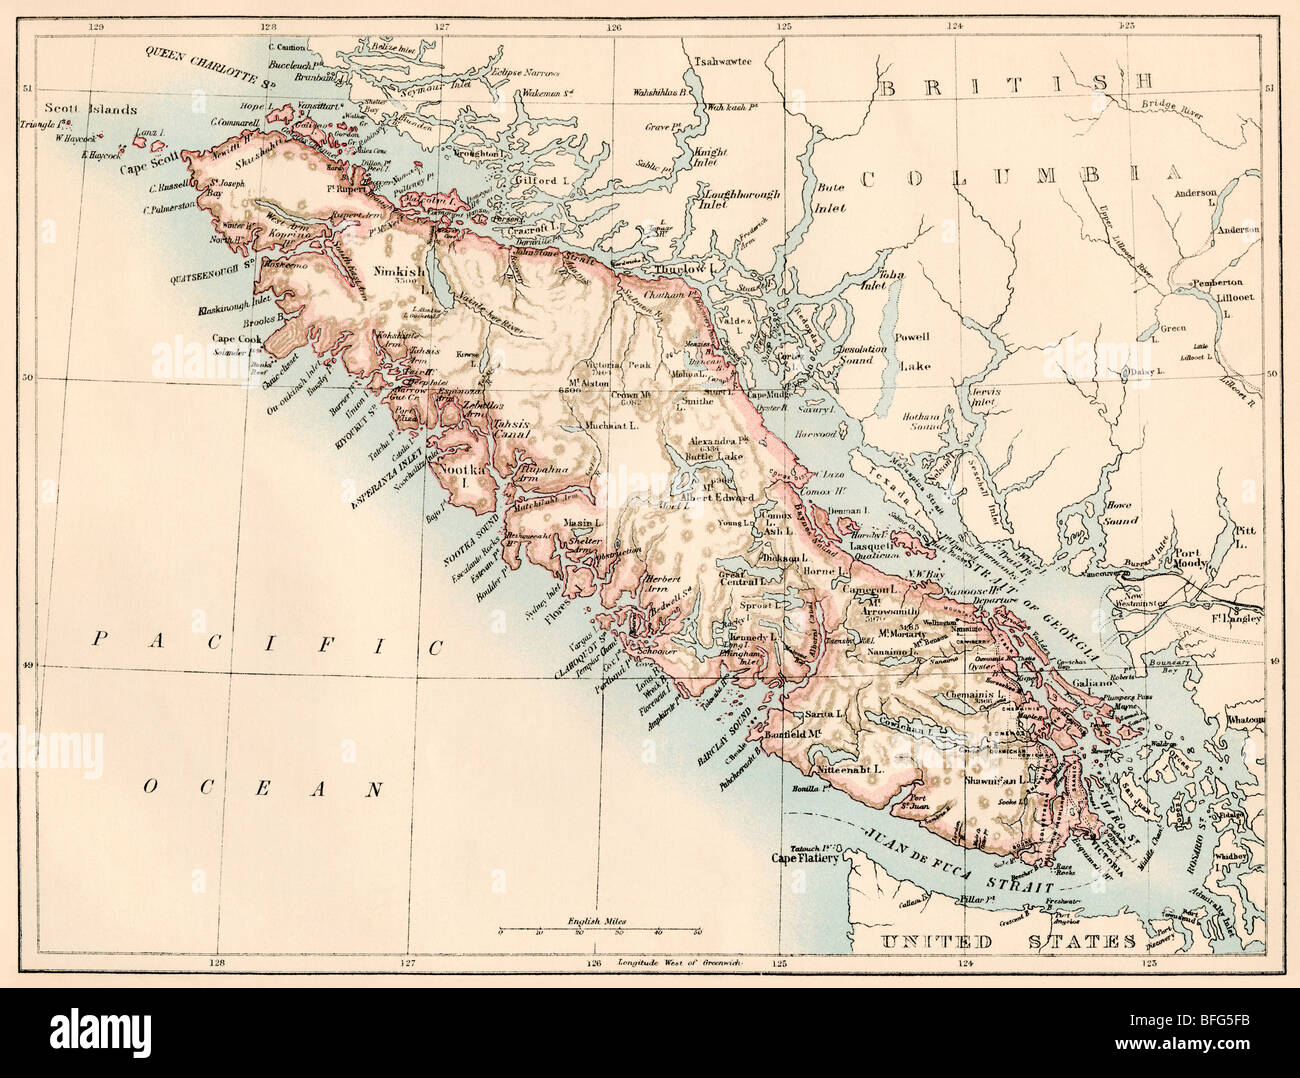 Map Of Vancouver Island British Columbia Canada 1870s Color